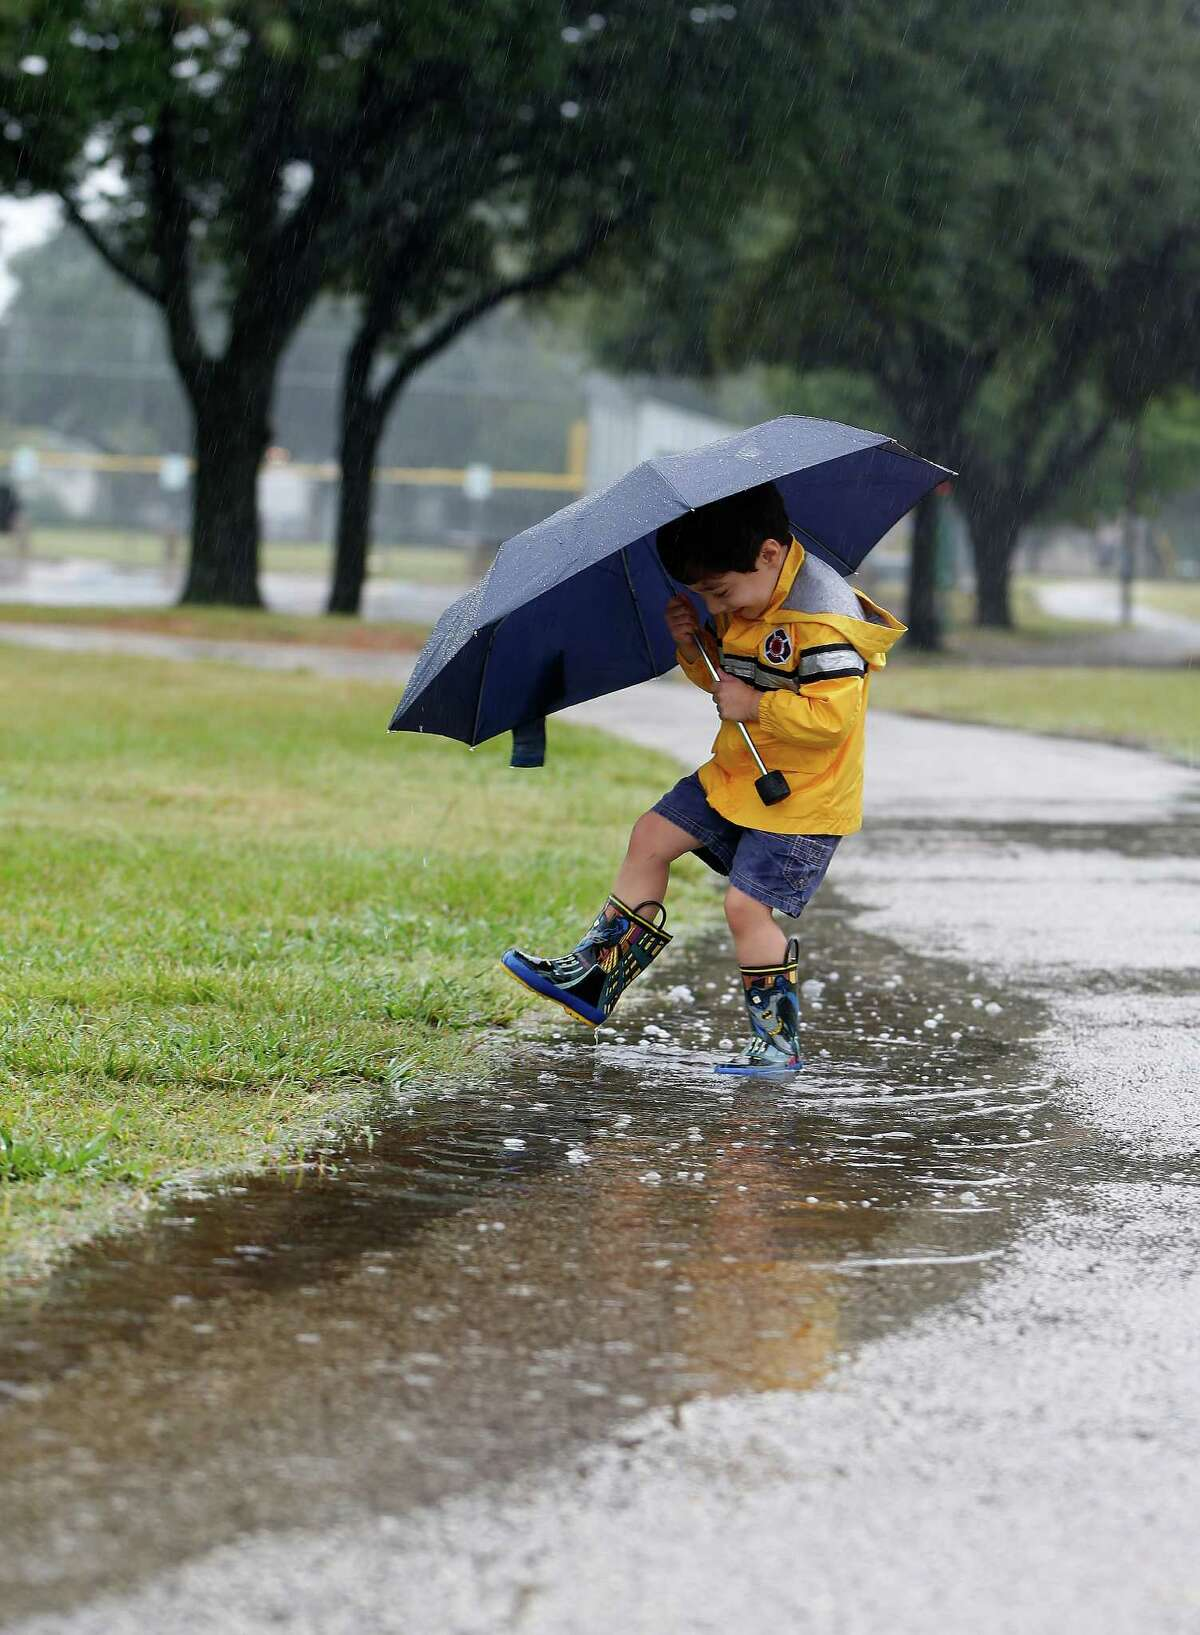 James Yurttas, 3, splashes through puddles Sunday at Stude Park after Hurricane Patricia left almost 10 inches of rain in the Houston area.